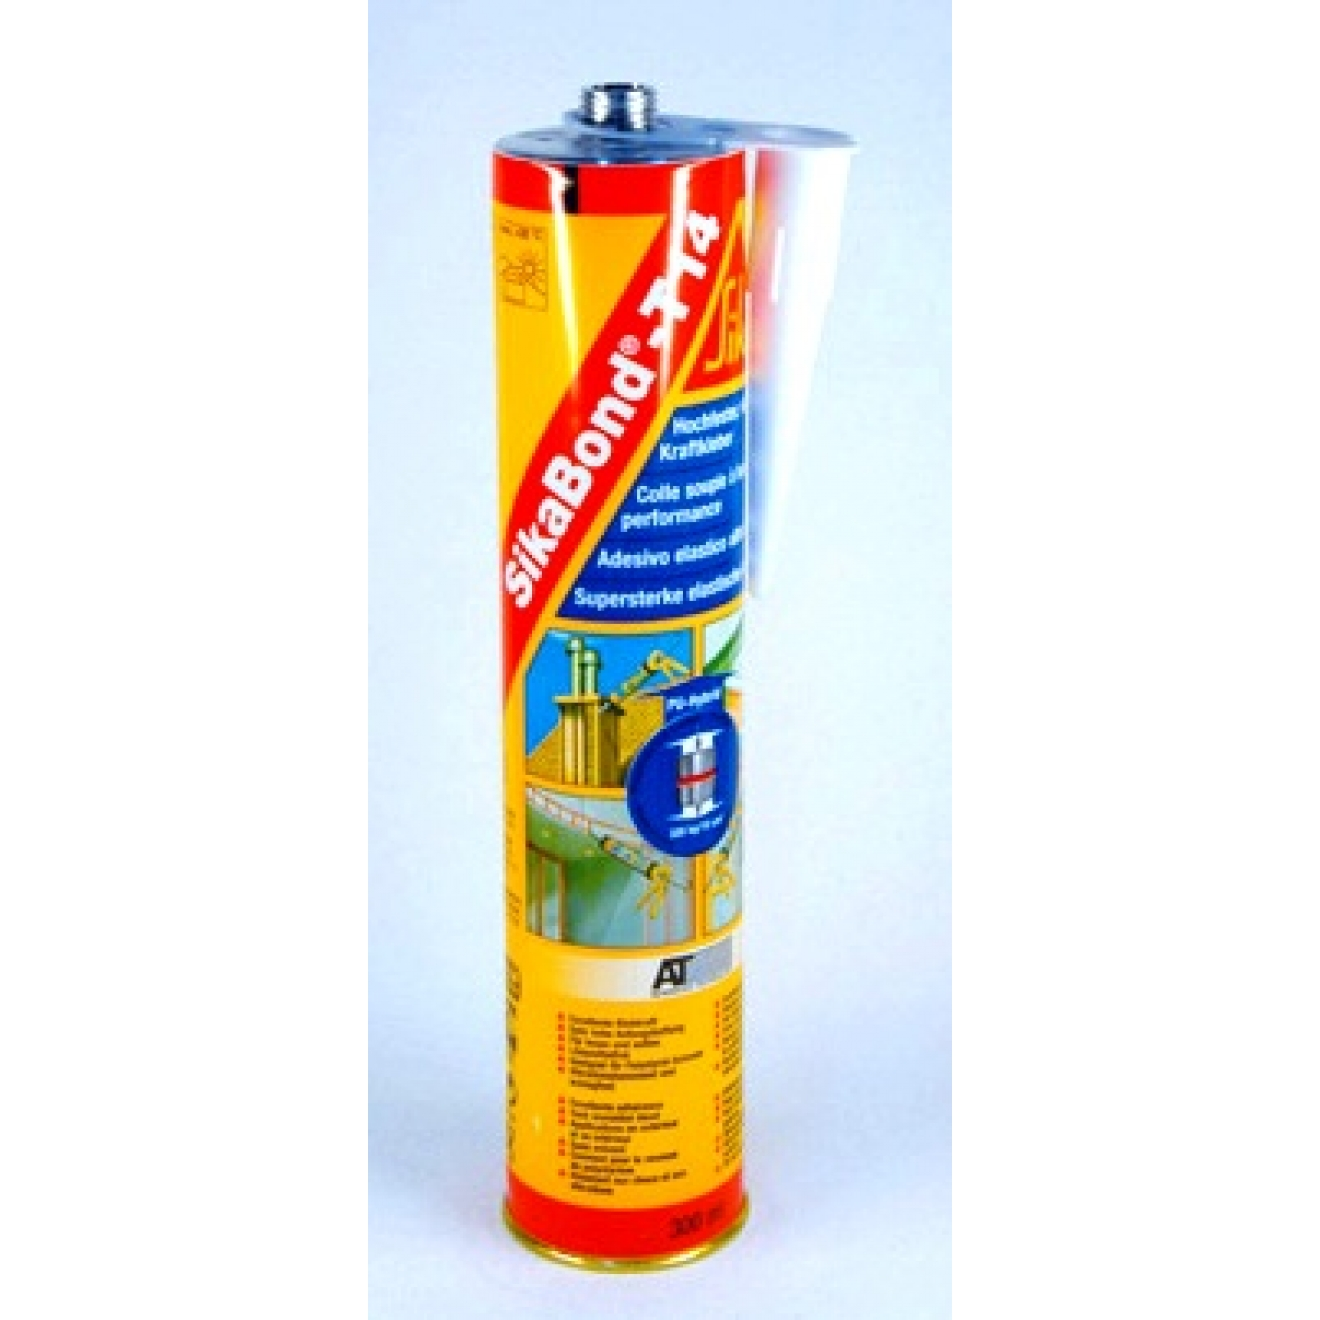 7b7bdcda48ccc SIKAFLEX AT-Connection sealant based on polyurethane hybrid here in the shop